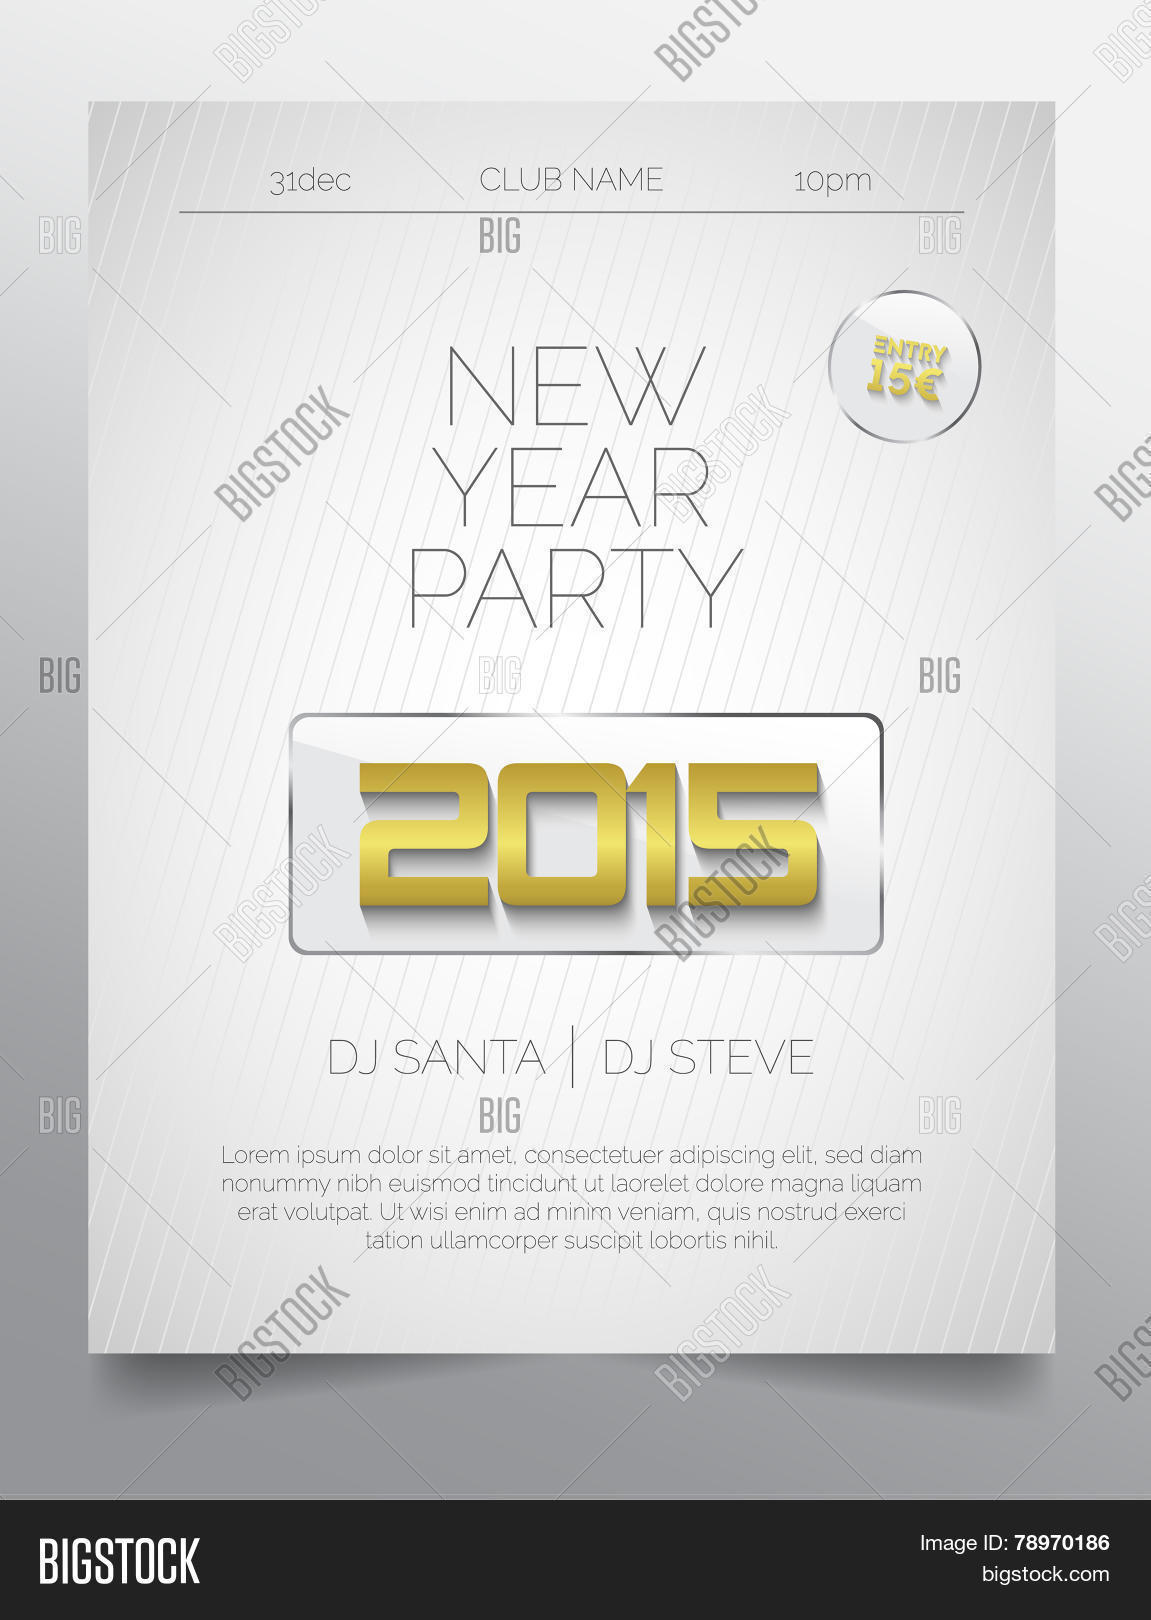 New Year Party Flyer Vector & Photo (Free Trial) | Bigstock